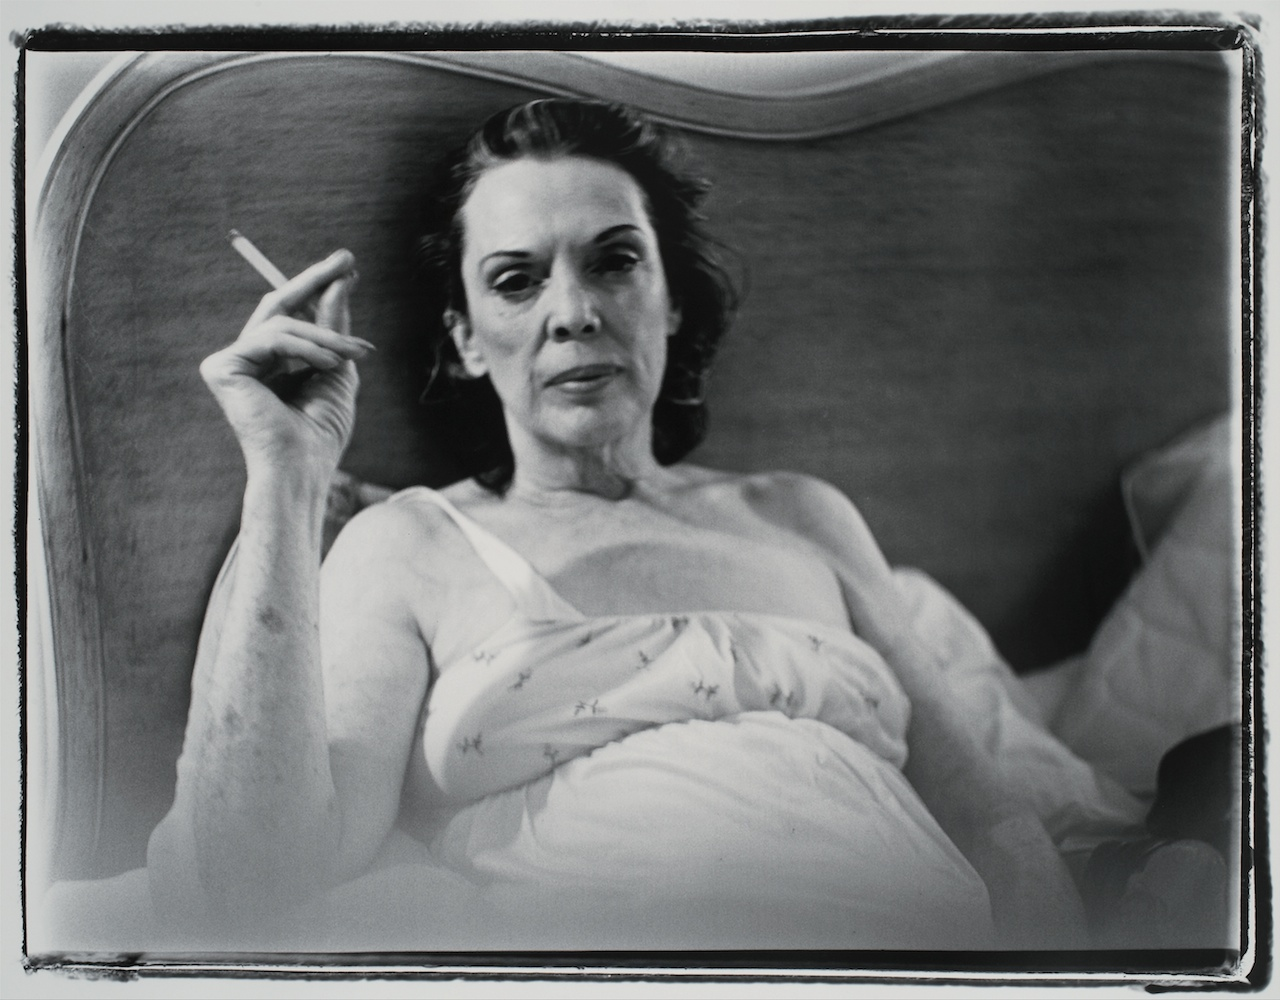 """Marilyn Minter, """"Coral Ridge Towers (Mom Smoking)"""" (1969), gelatin silver print, sheet 16 by 20 in. (collection of Beth Rudin DeWoody)"""